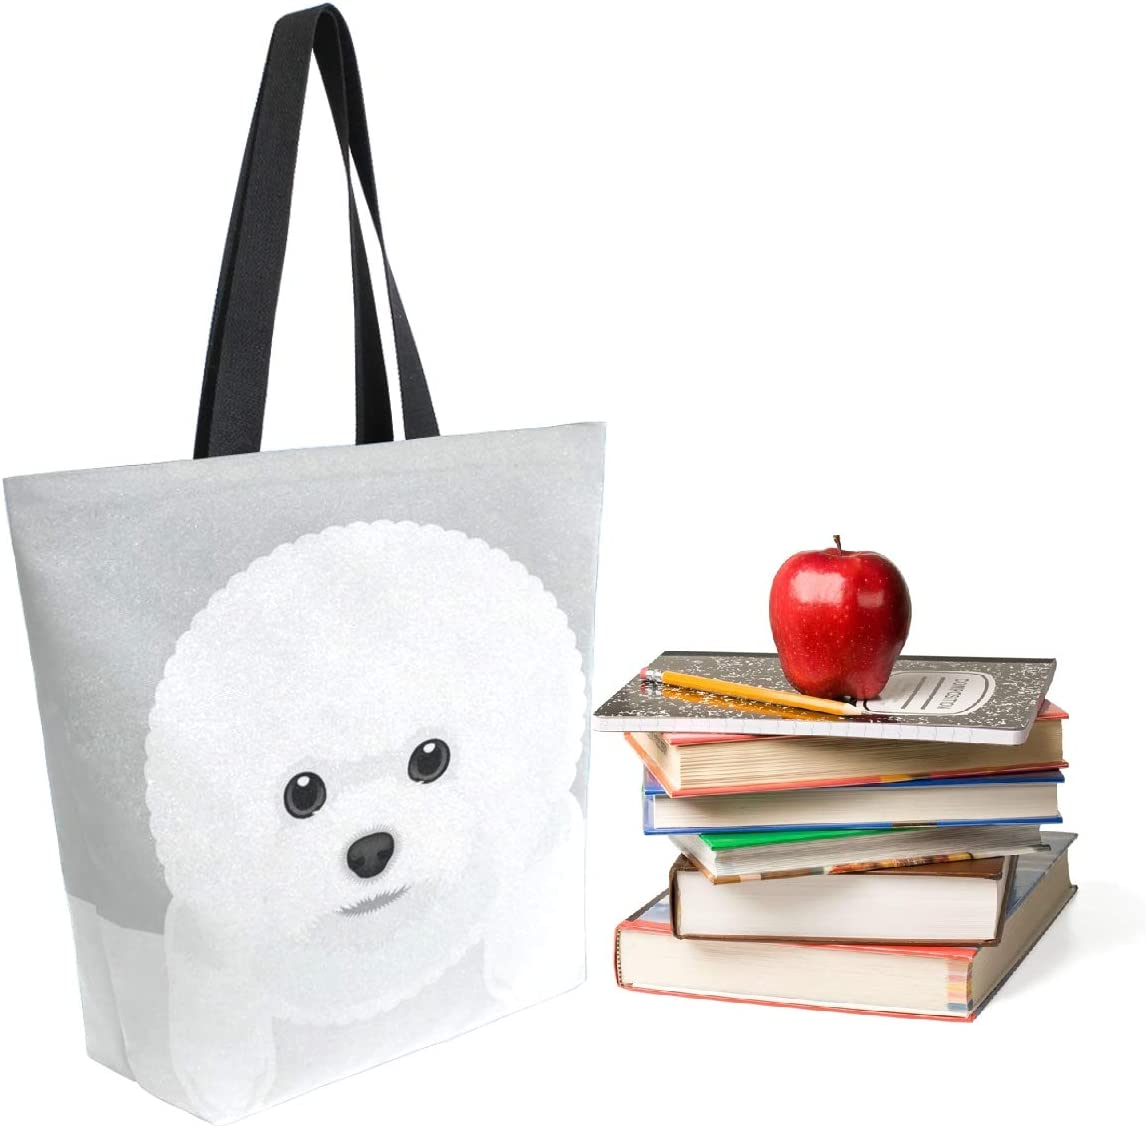 ZzWwR Cute Bichon Frise Dog Extra Large Canvas Shoulder Tote Top Storage Handle Bag for Gym Beach Weekender Travel Shopping